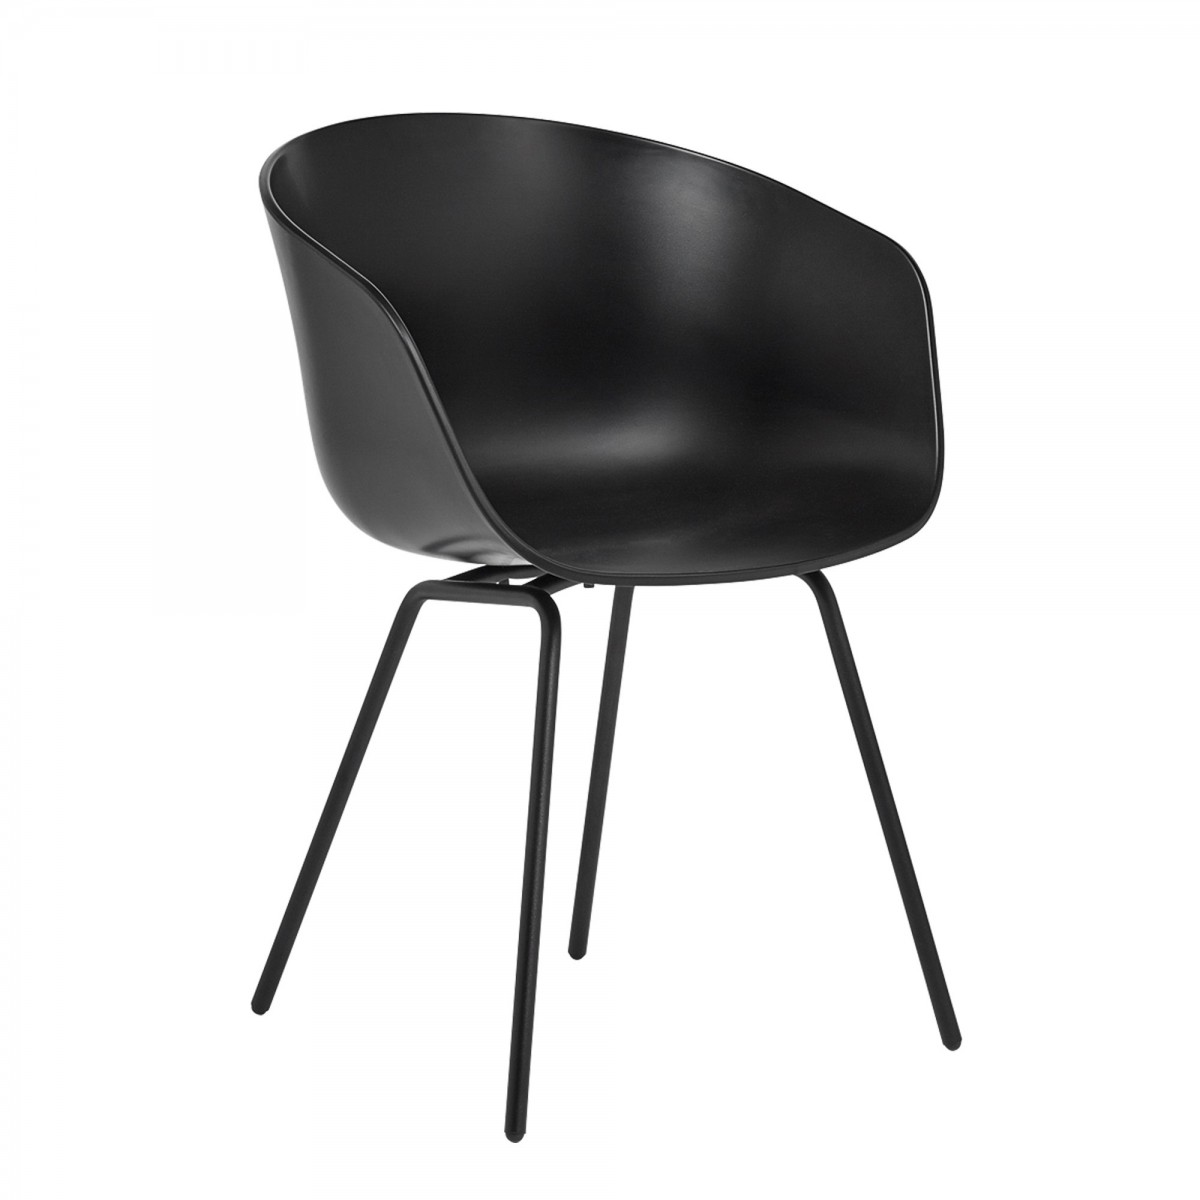 Furniture Chairs Black Aac 26 Black Chair Hay